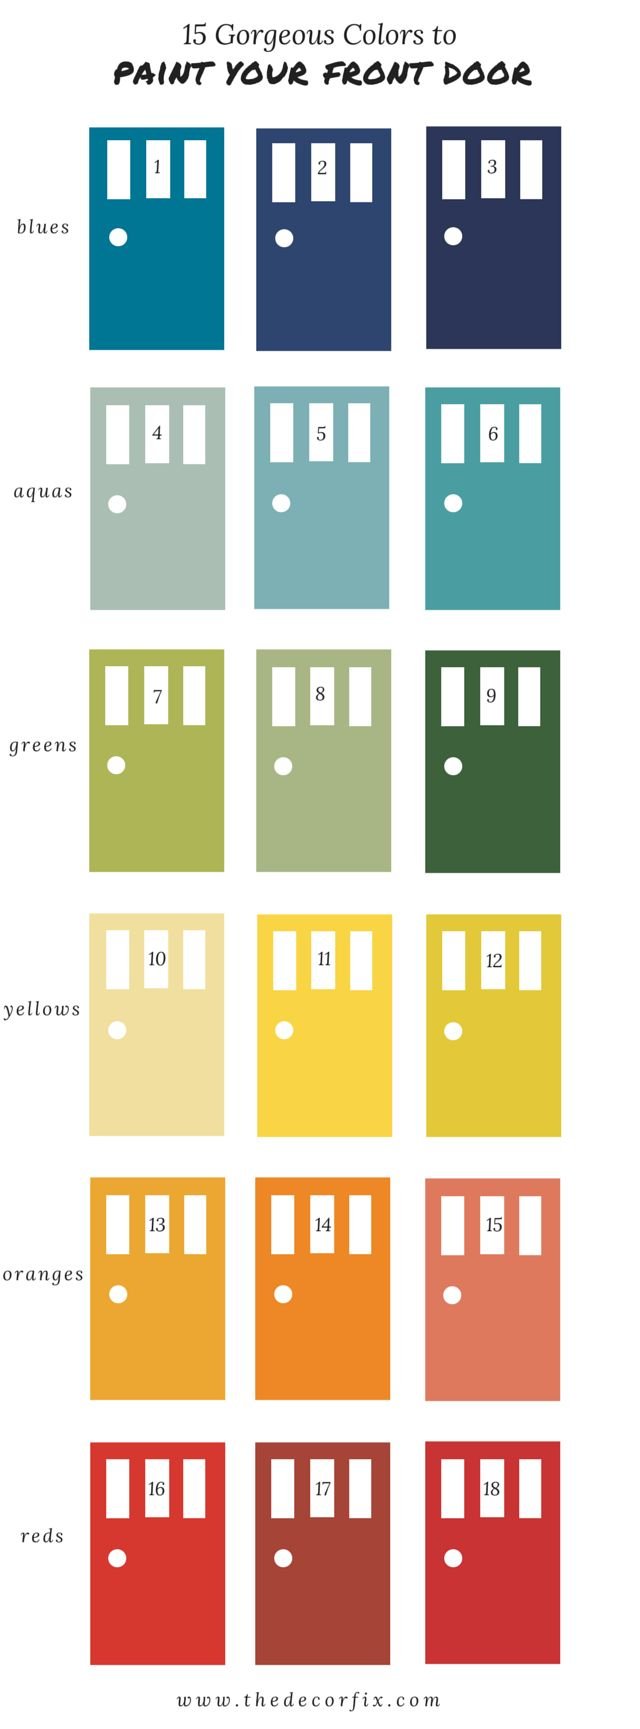 18 Gorgeous Colors to Paint Your Front Door (A designer's tops picks!) #paintcolor